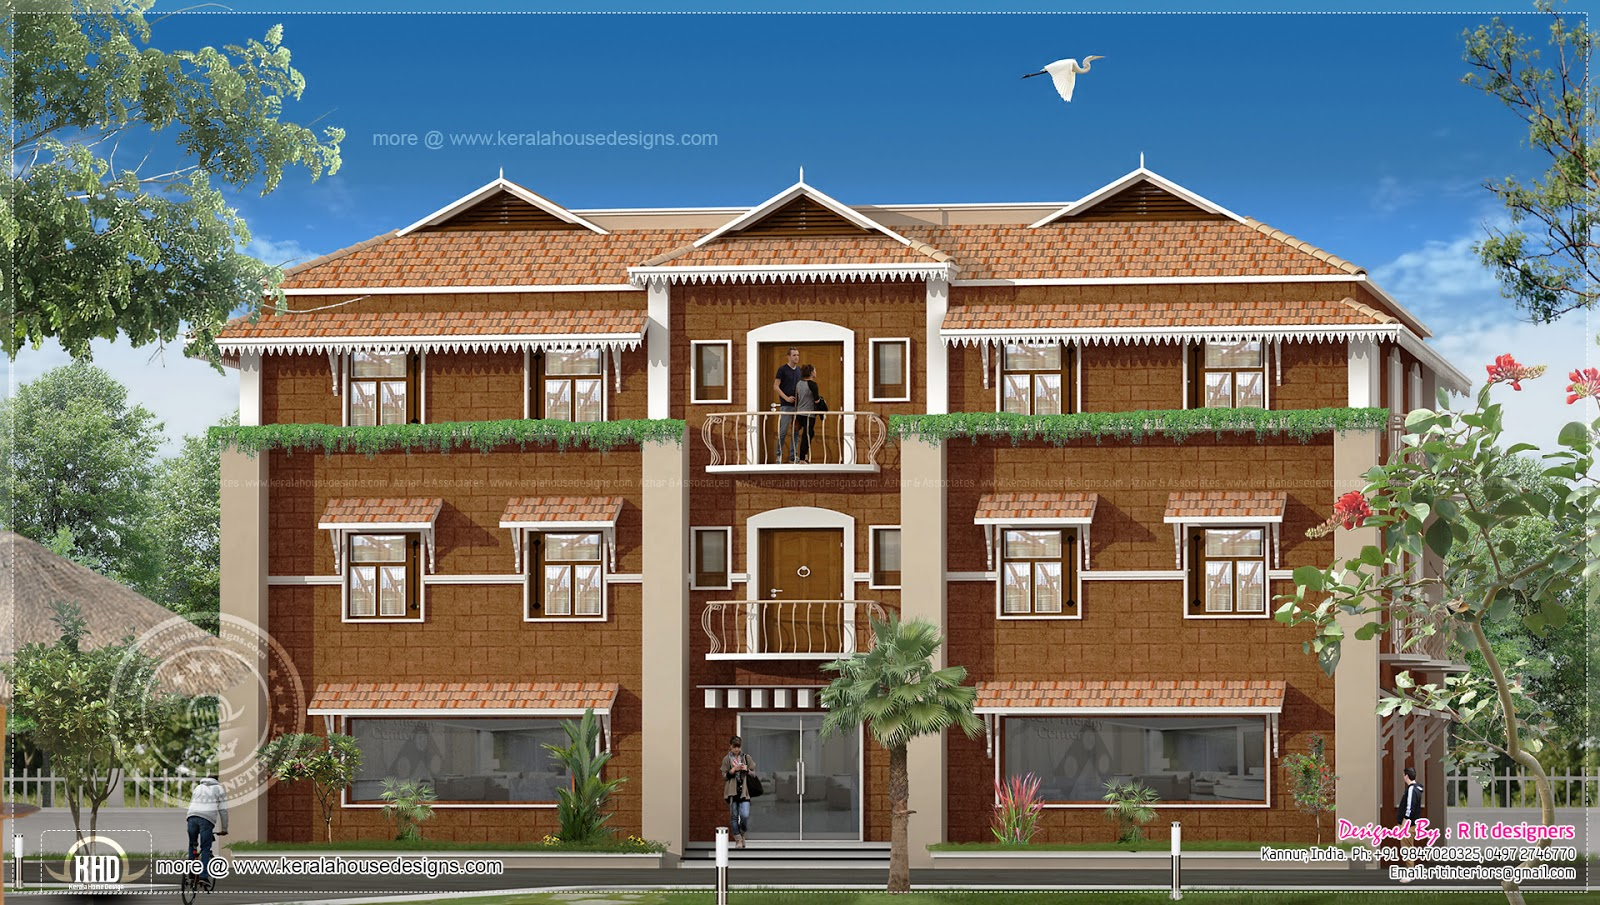 Duplex house elevation design in kerala house design plans for Duplex house models